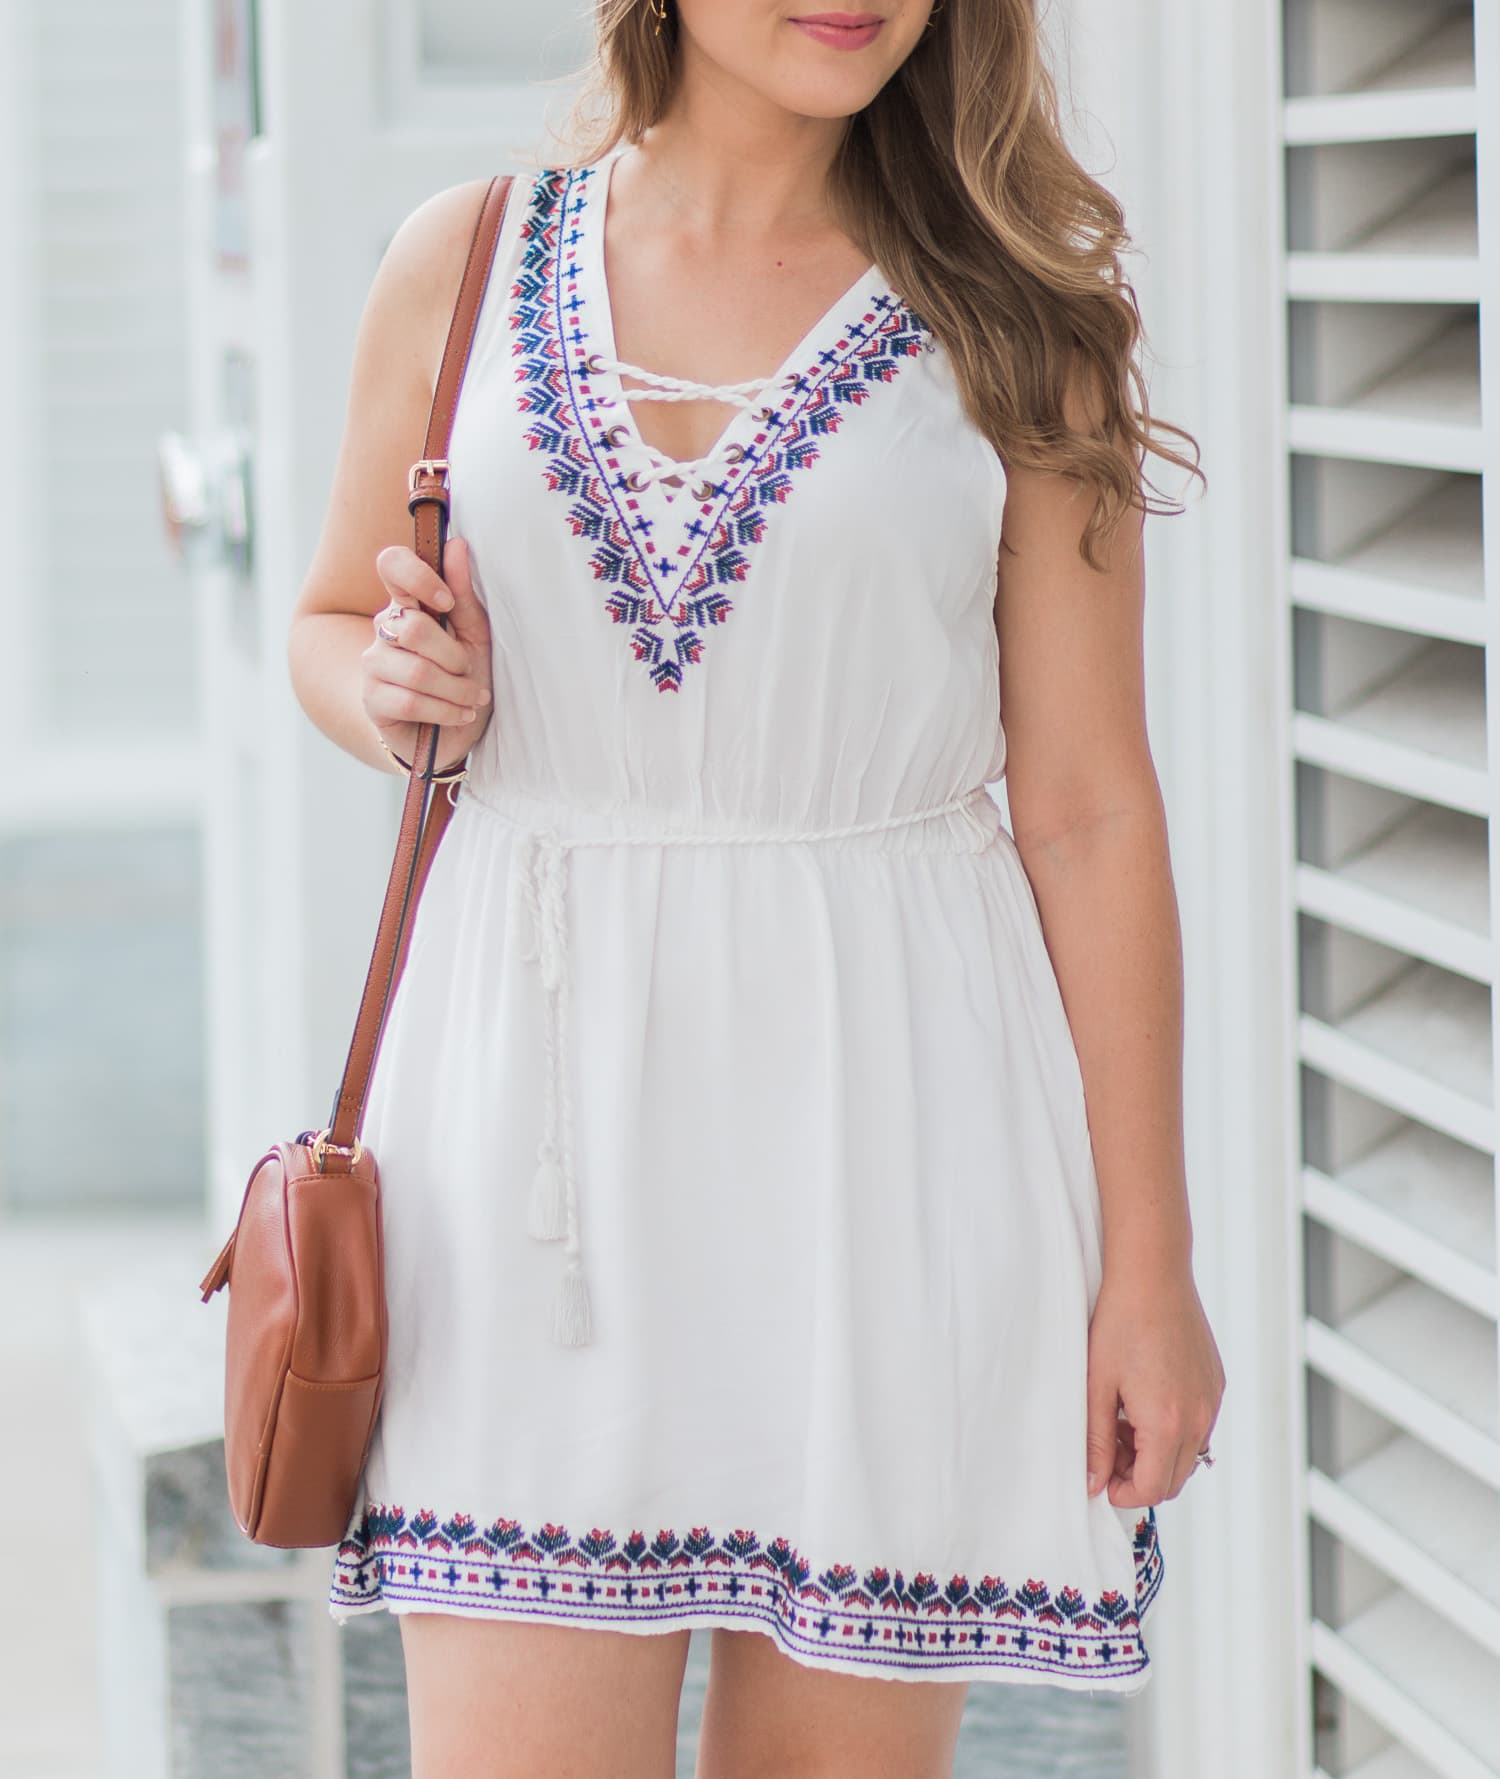 Forever 21 embroidered lace-up dress, Old Navy cognac tassel crossbody bag, and Stella & Dot Addison cuff | Ashley Brooke Nicholas